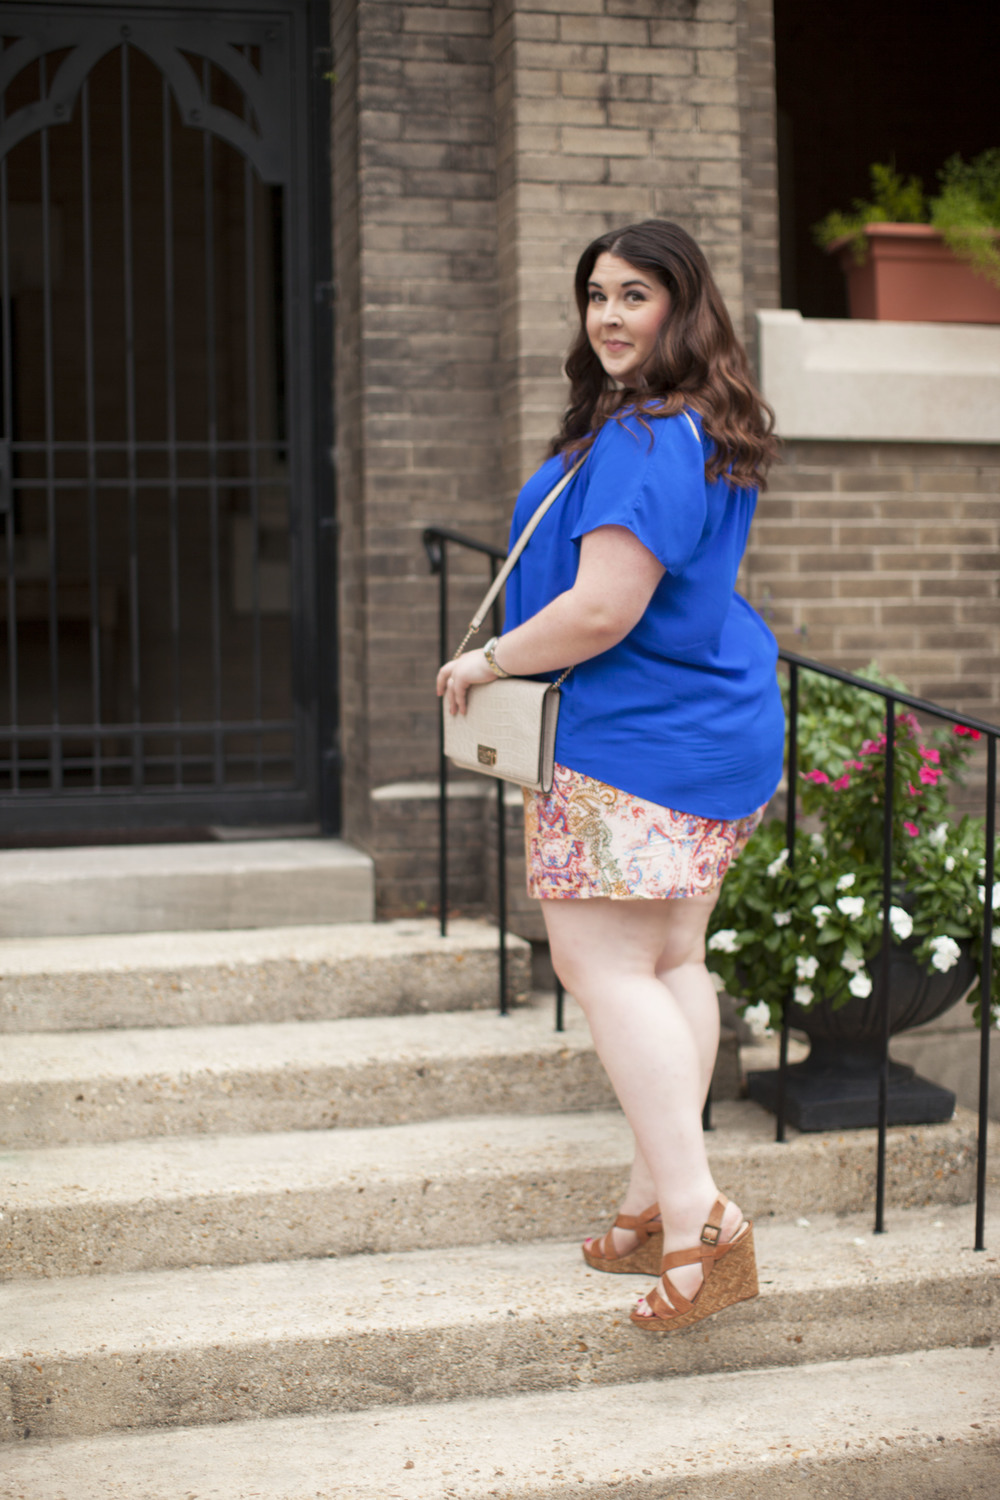 plus size street style royal blue top plus size linen shorts 009 copy.jpg